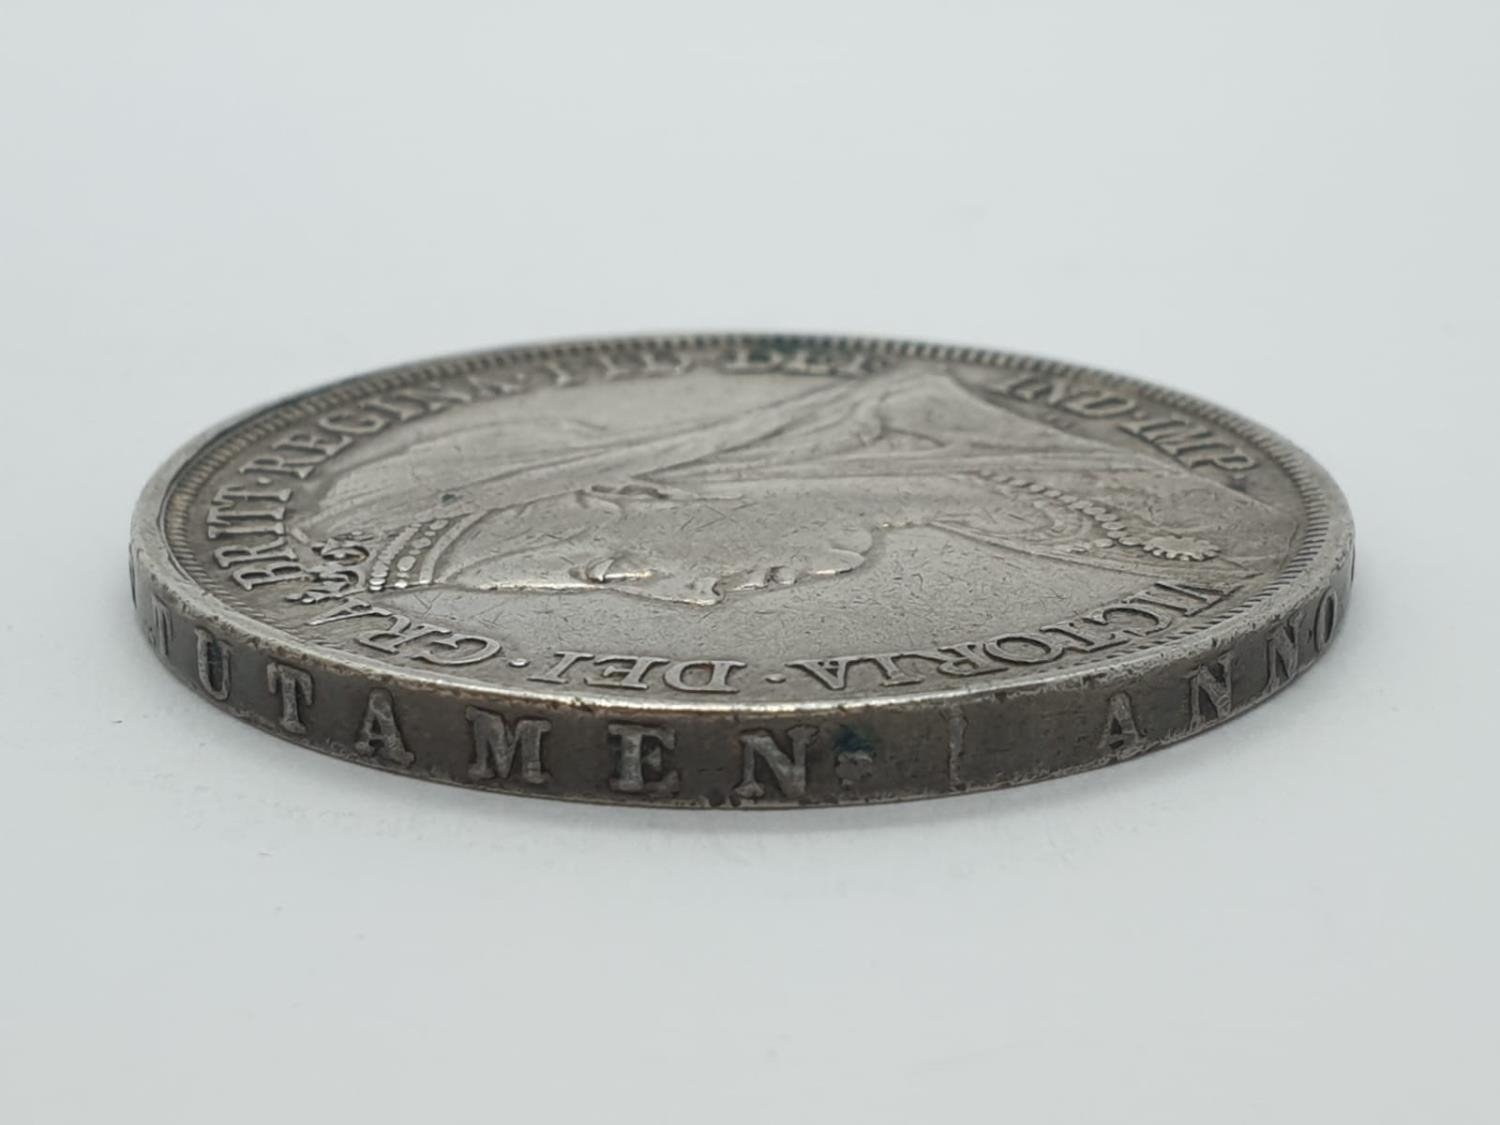 1893 Victorian silver crown - Image 5 of 5